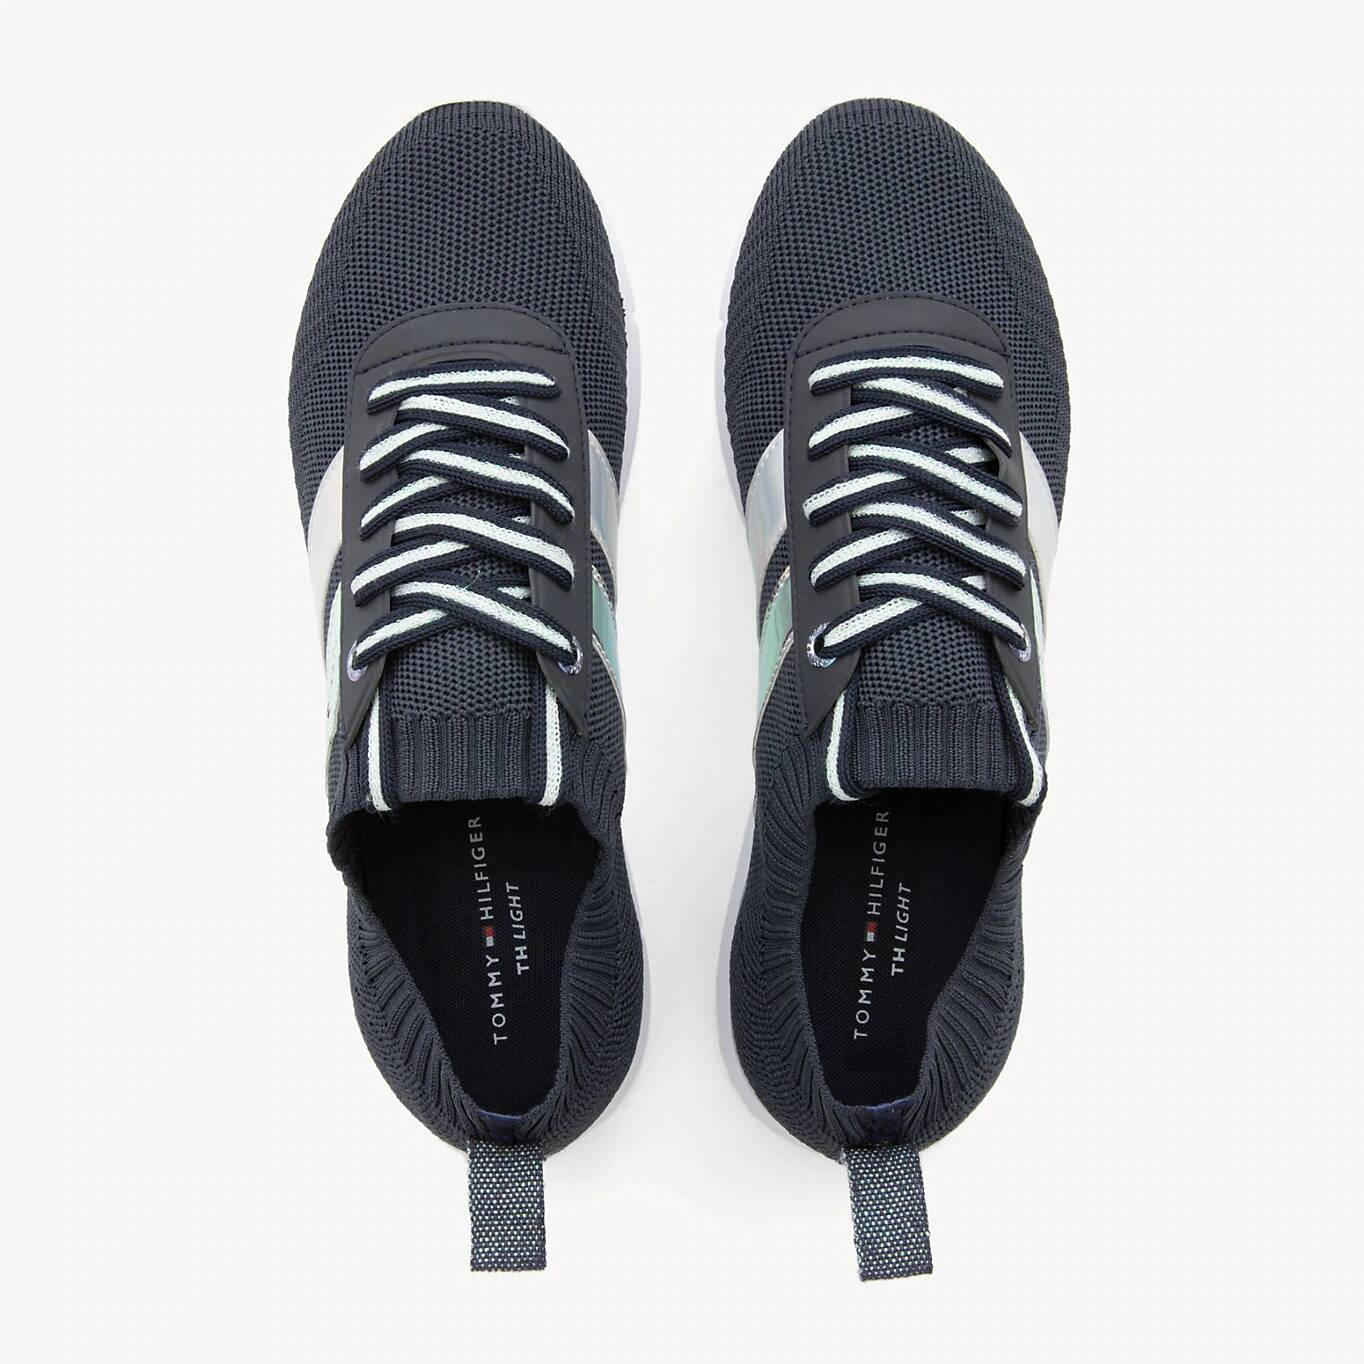 Tommy Hilfiger modré tenisky Corporate Detail Light Sneaker Midnight